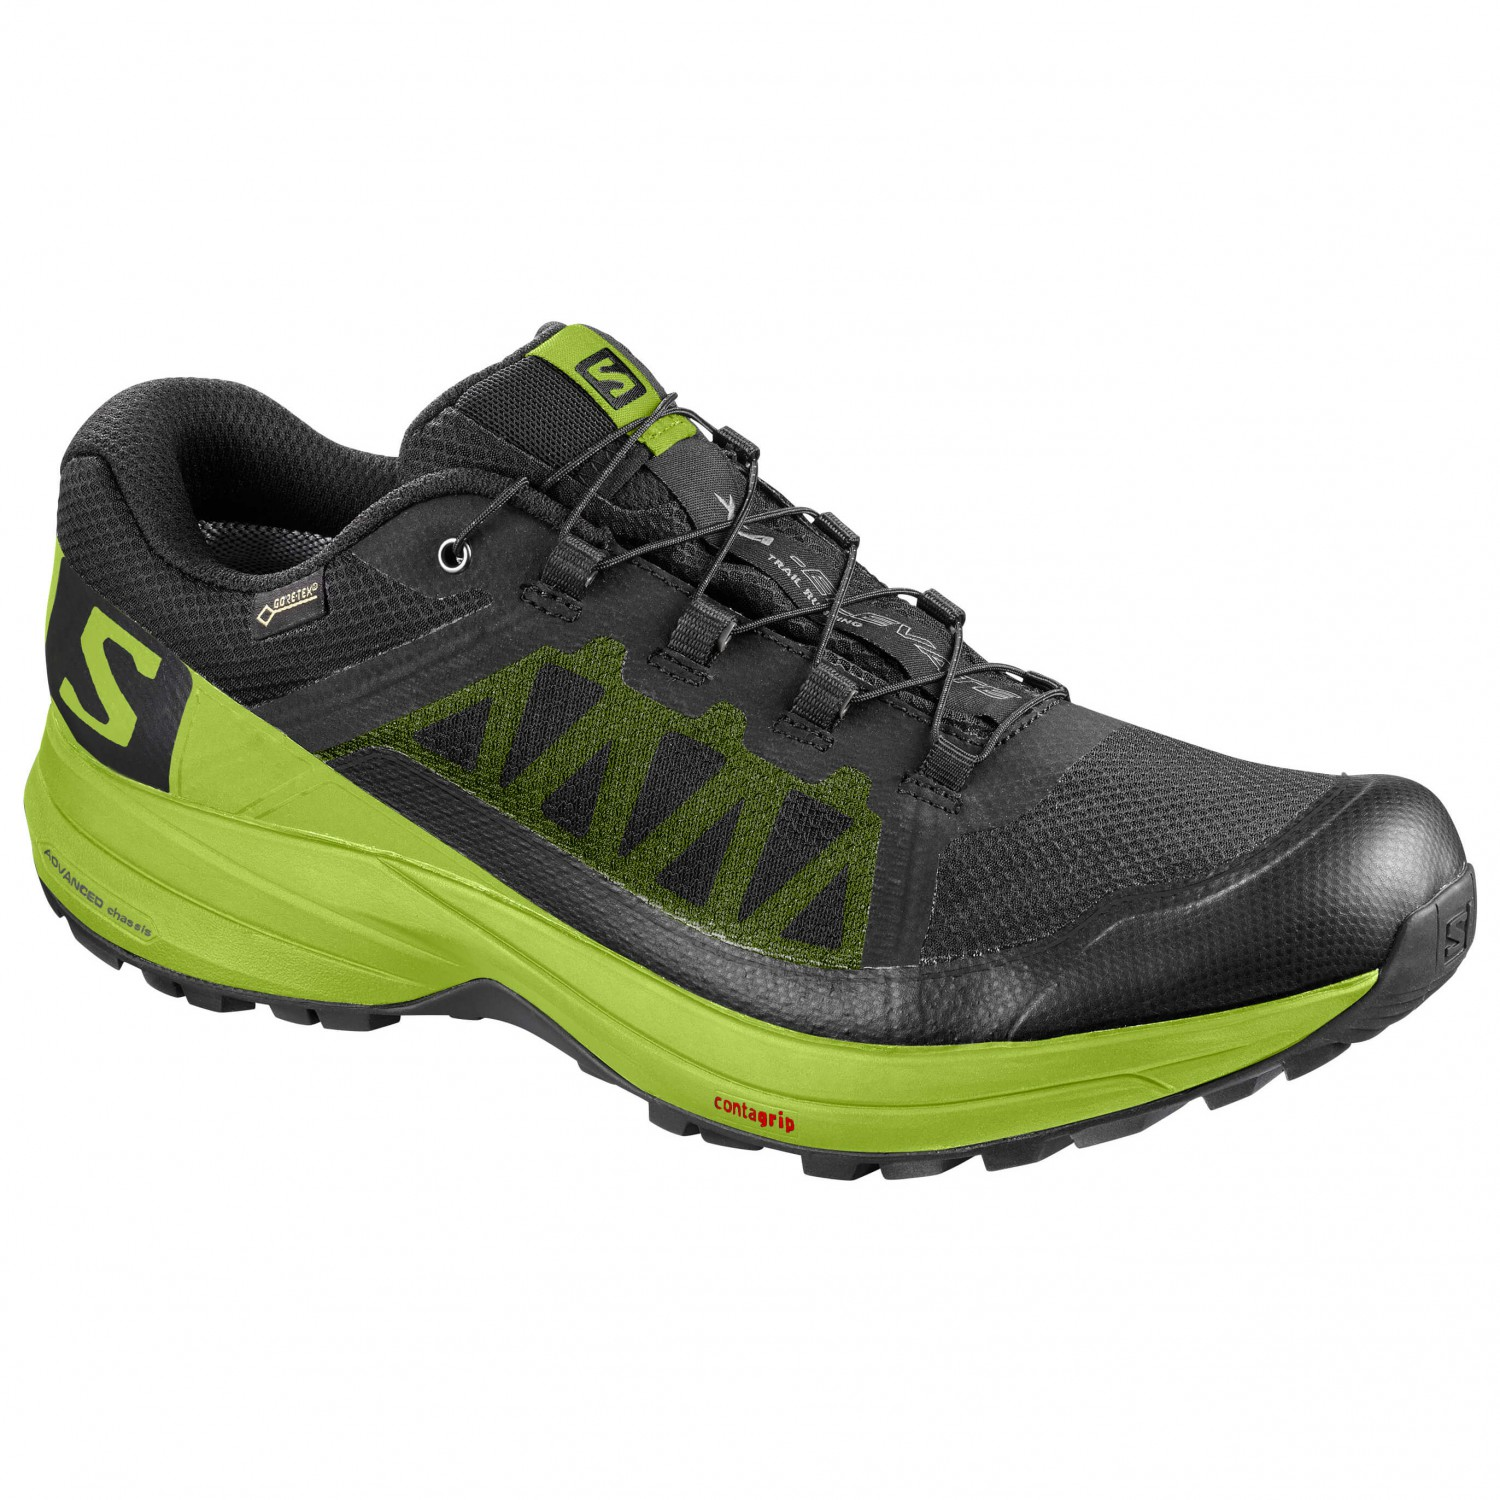 a4c64494bfd5 Salomon XA Elevate GTX - Trail Running Shoes Men s